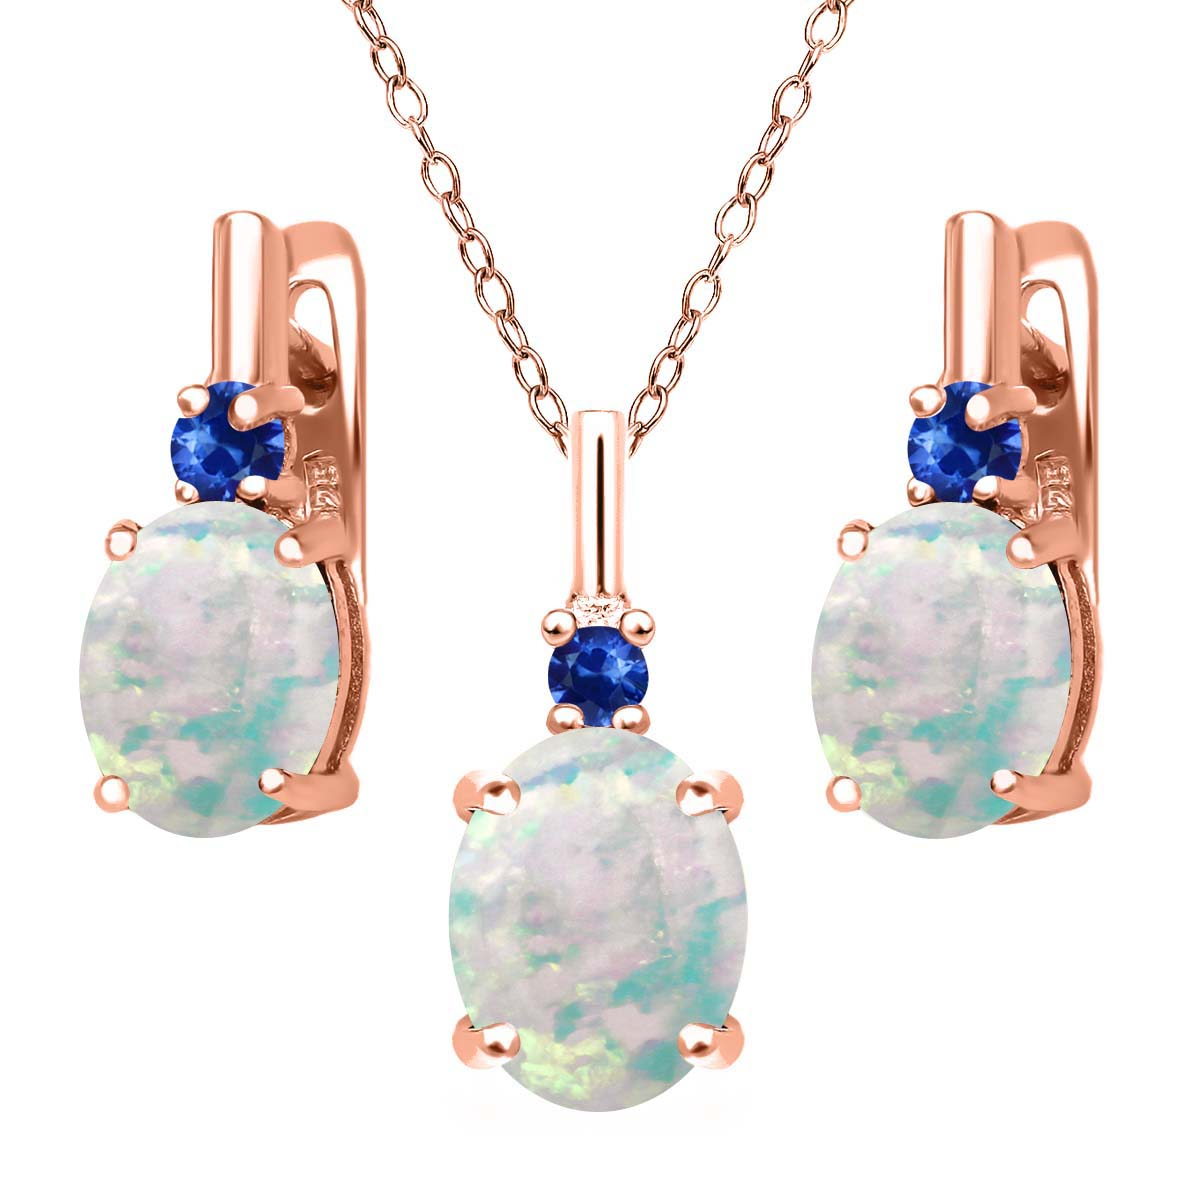 4.88ct Oval Simulated Opal Blue Sapphire 18K Rose Gold Plated Silver Jewelry Set by